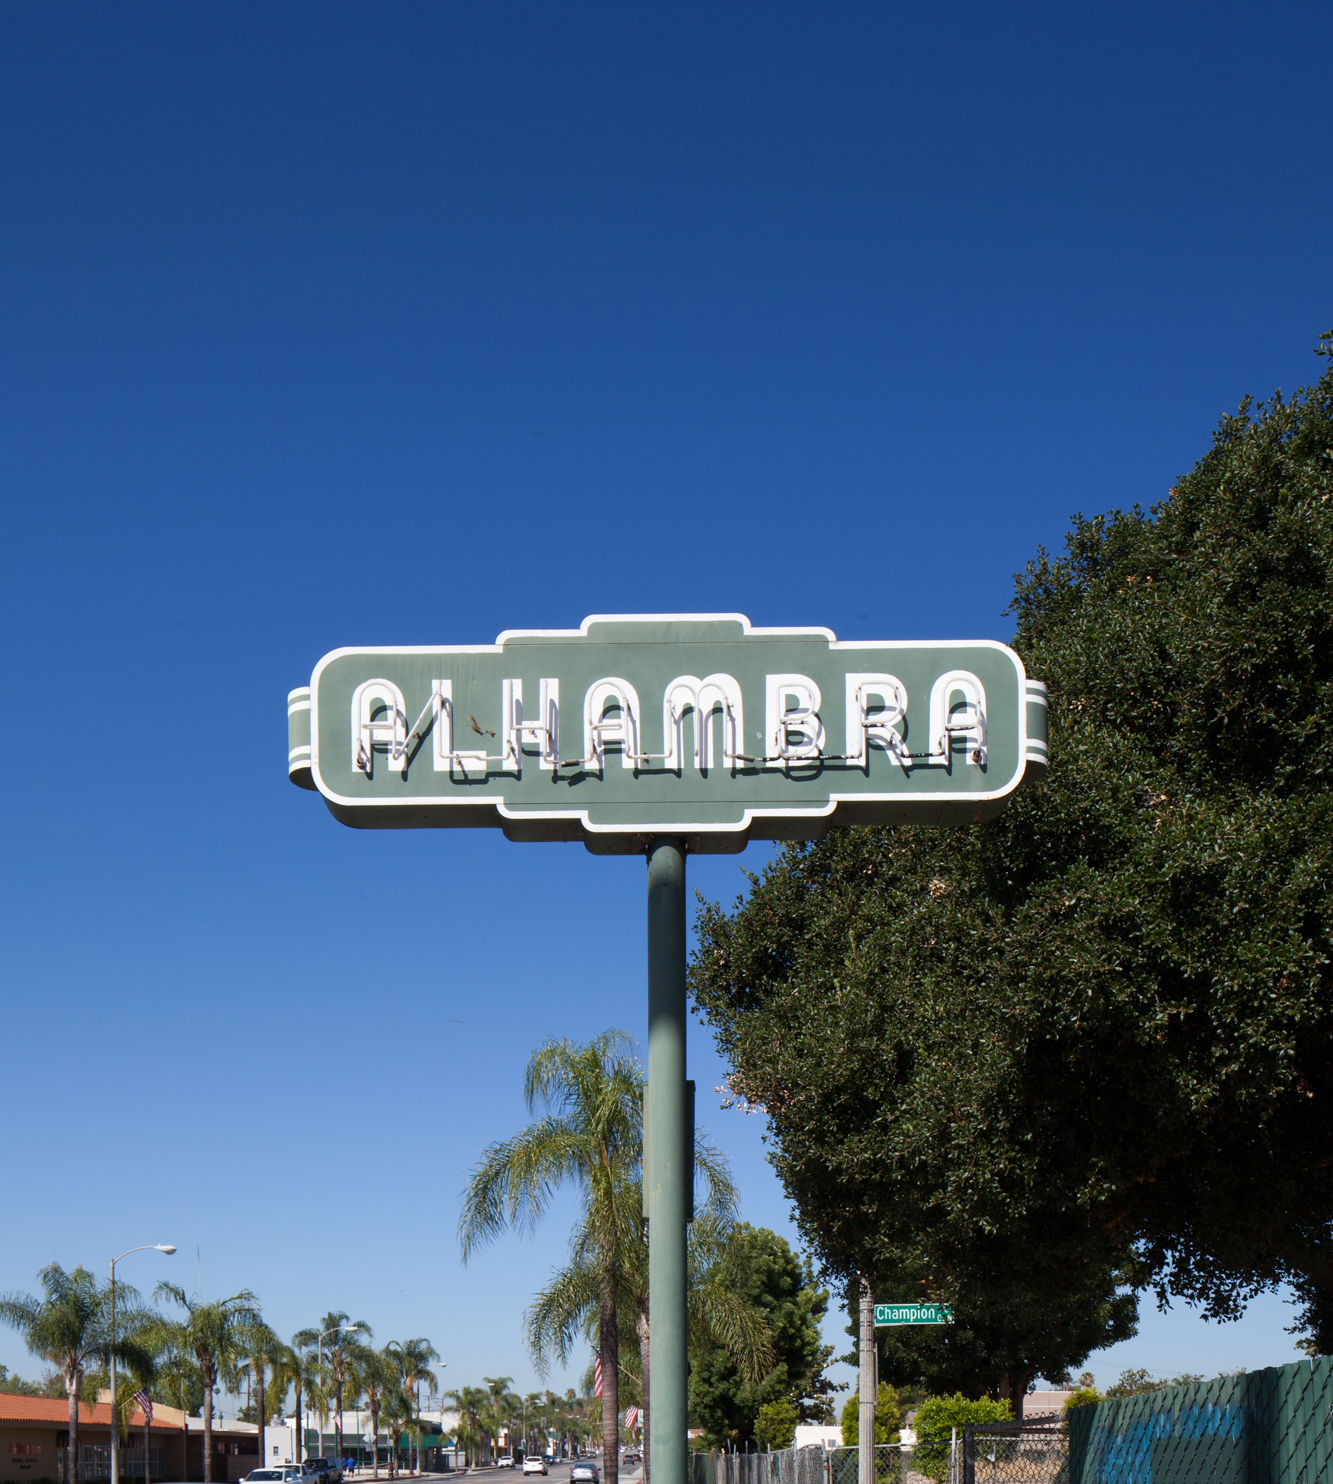 Historic Alhambra Street Sign